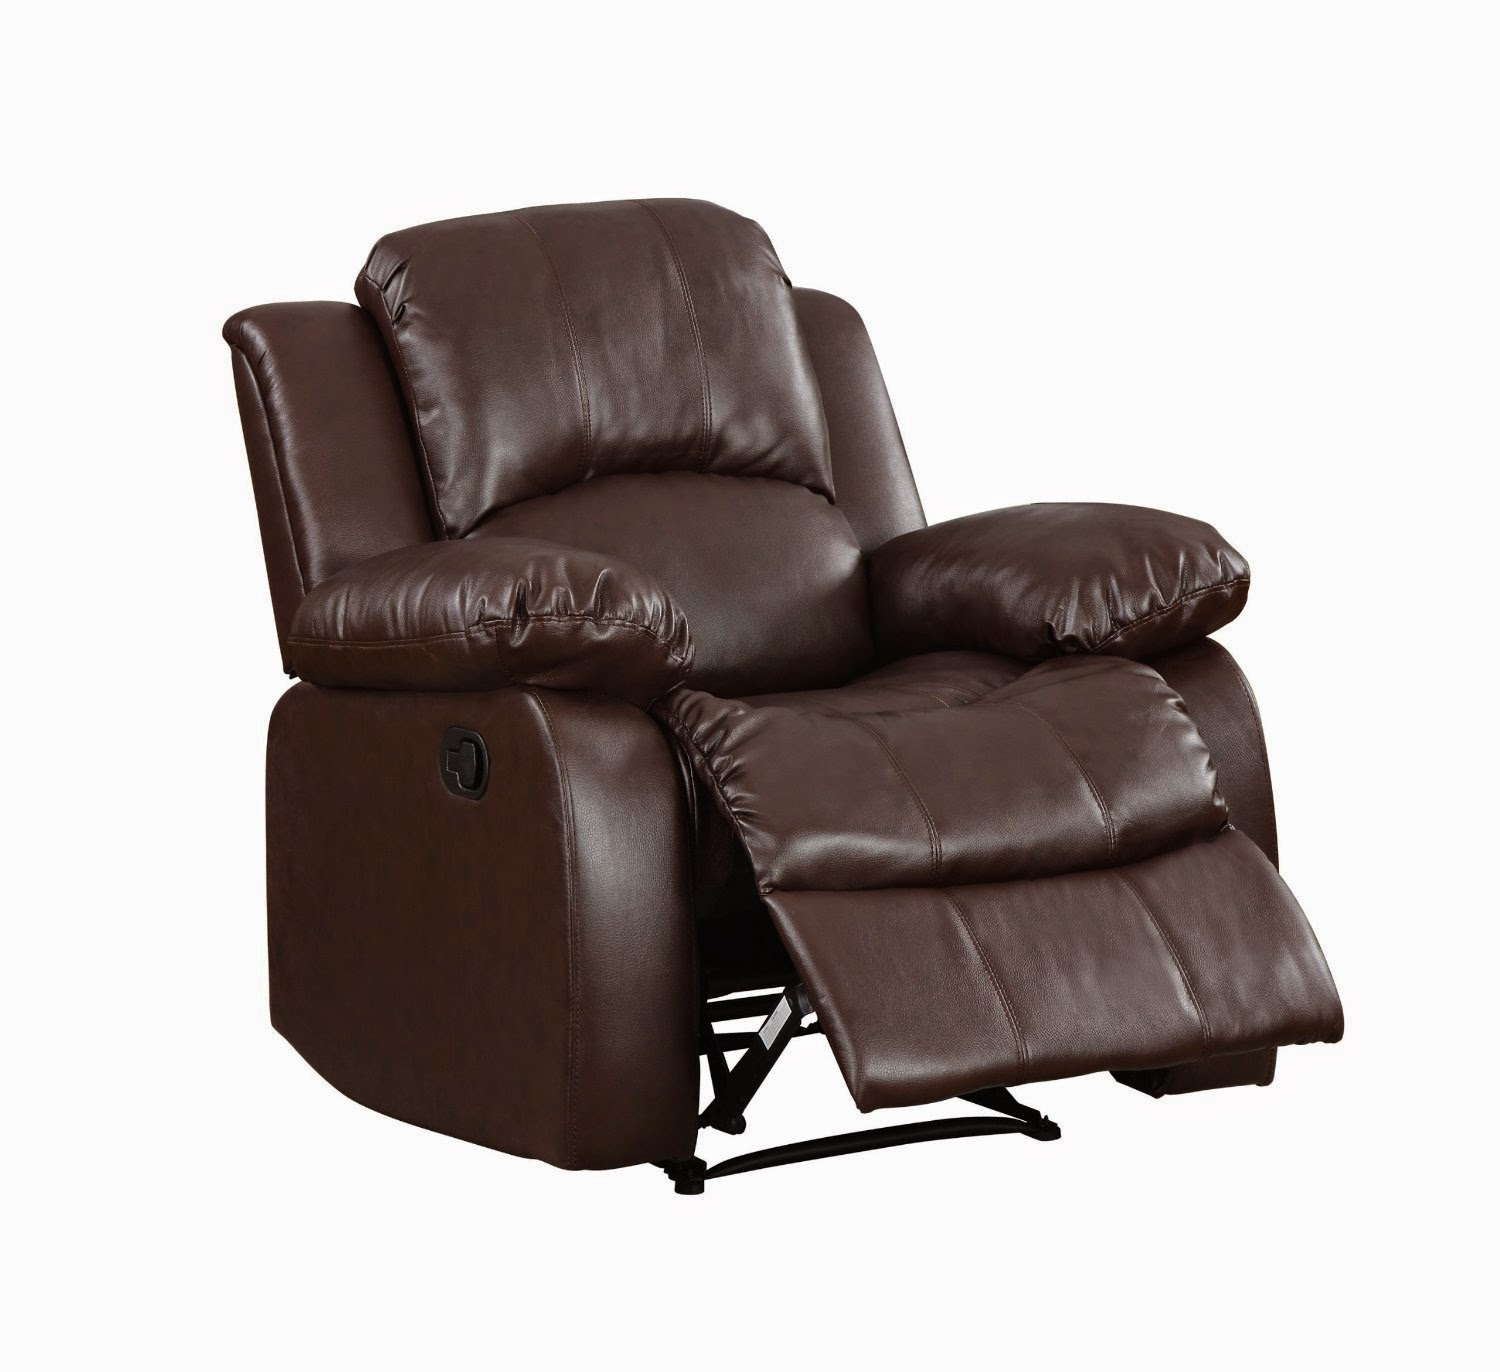 Cheap reclining sofas sale leather reclining sofa costco Leather reclining loveseat